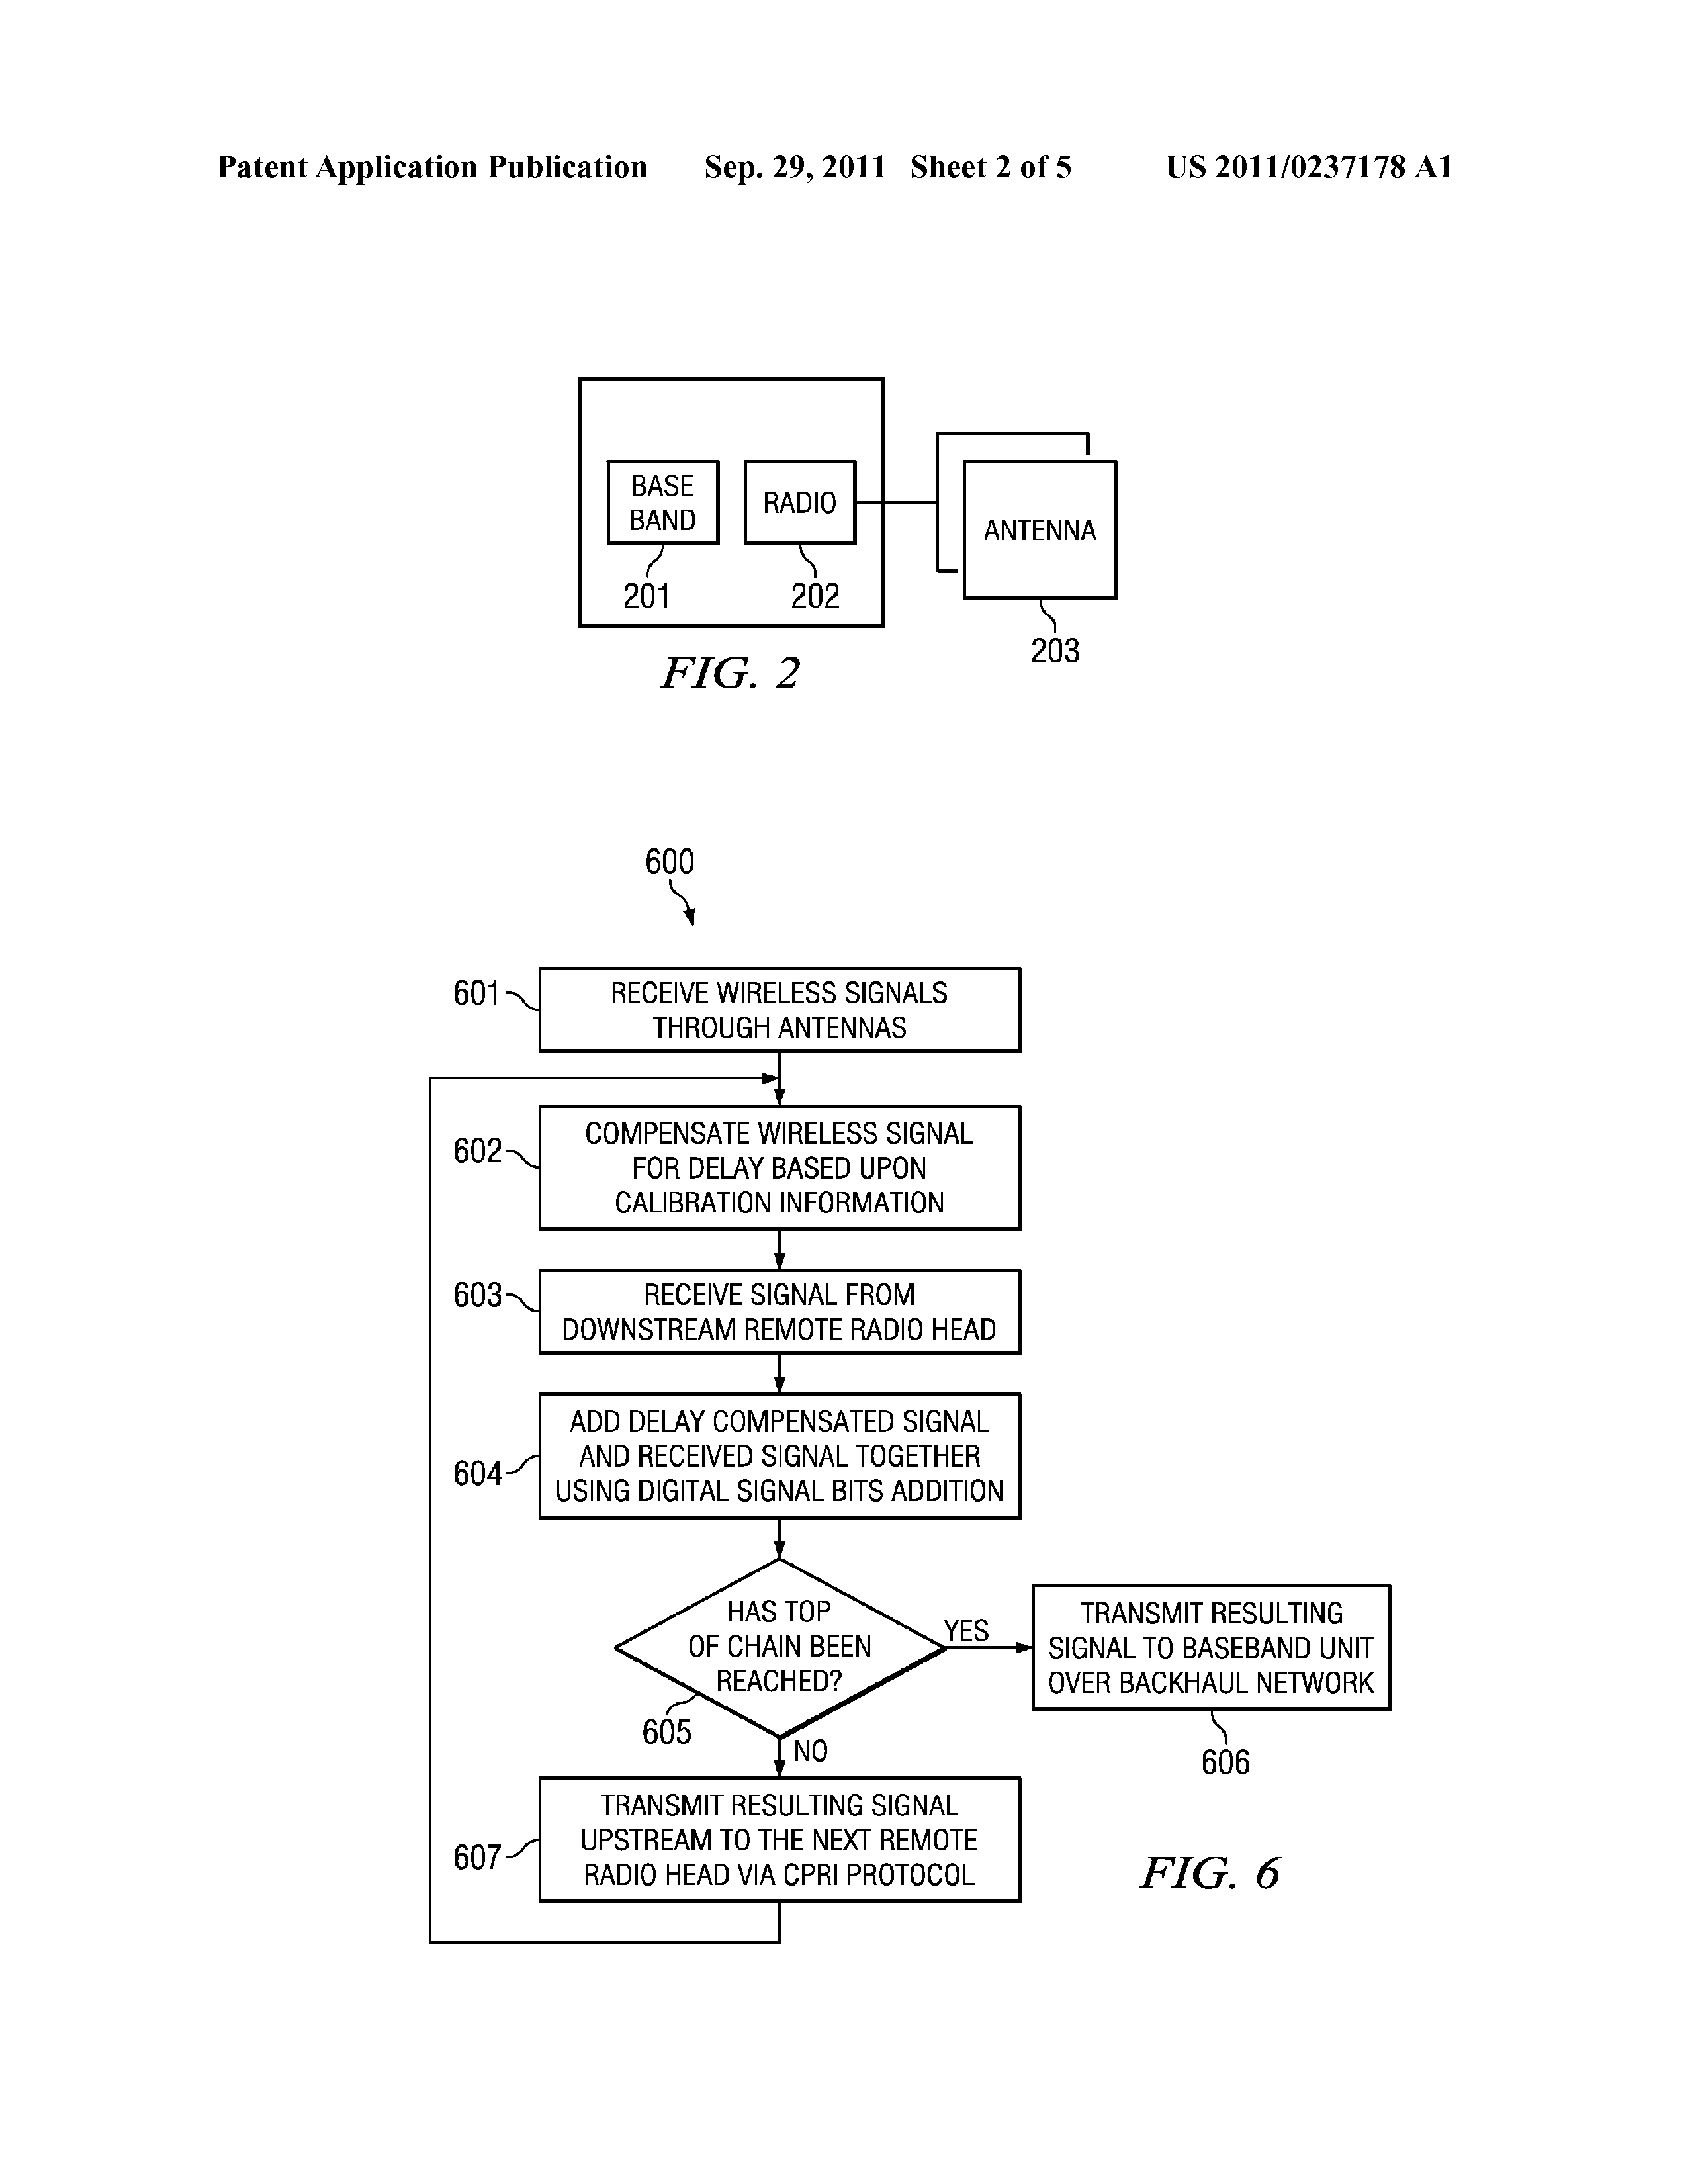 US 2011/0237178 A1 - Method And System For Cpri Cascading In